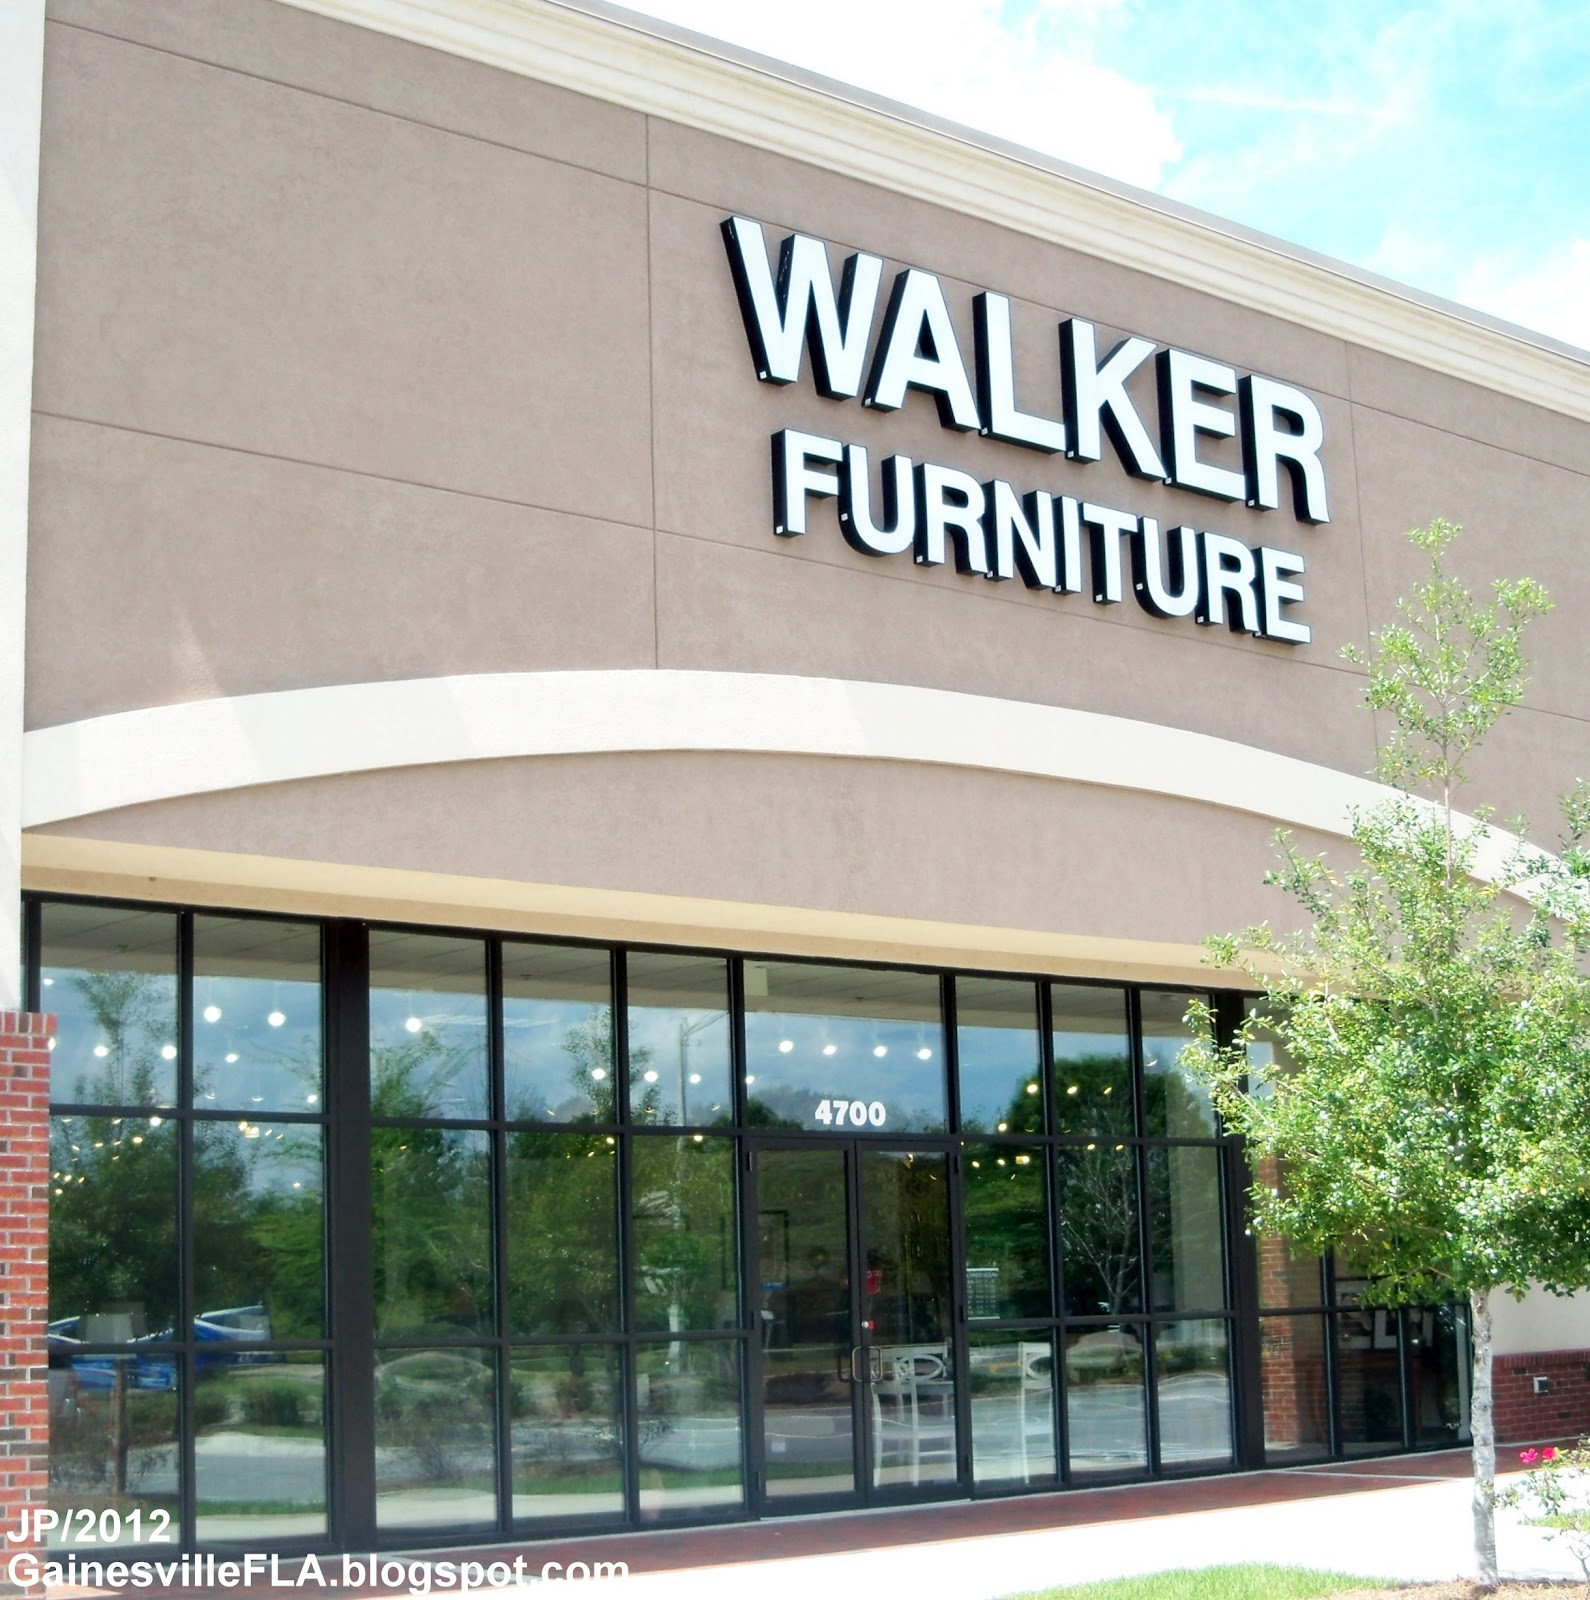 Exceptionnel WALKER FURNITURE GAINESVILLE FLORIDA SW 34th St. Walker Furniture Store  Alachua County Gainesville FL.